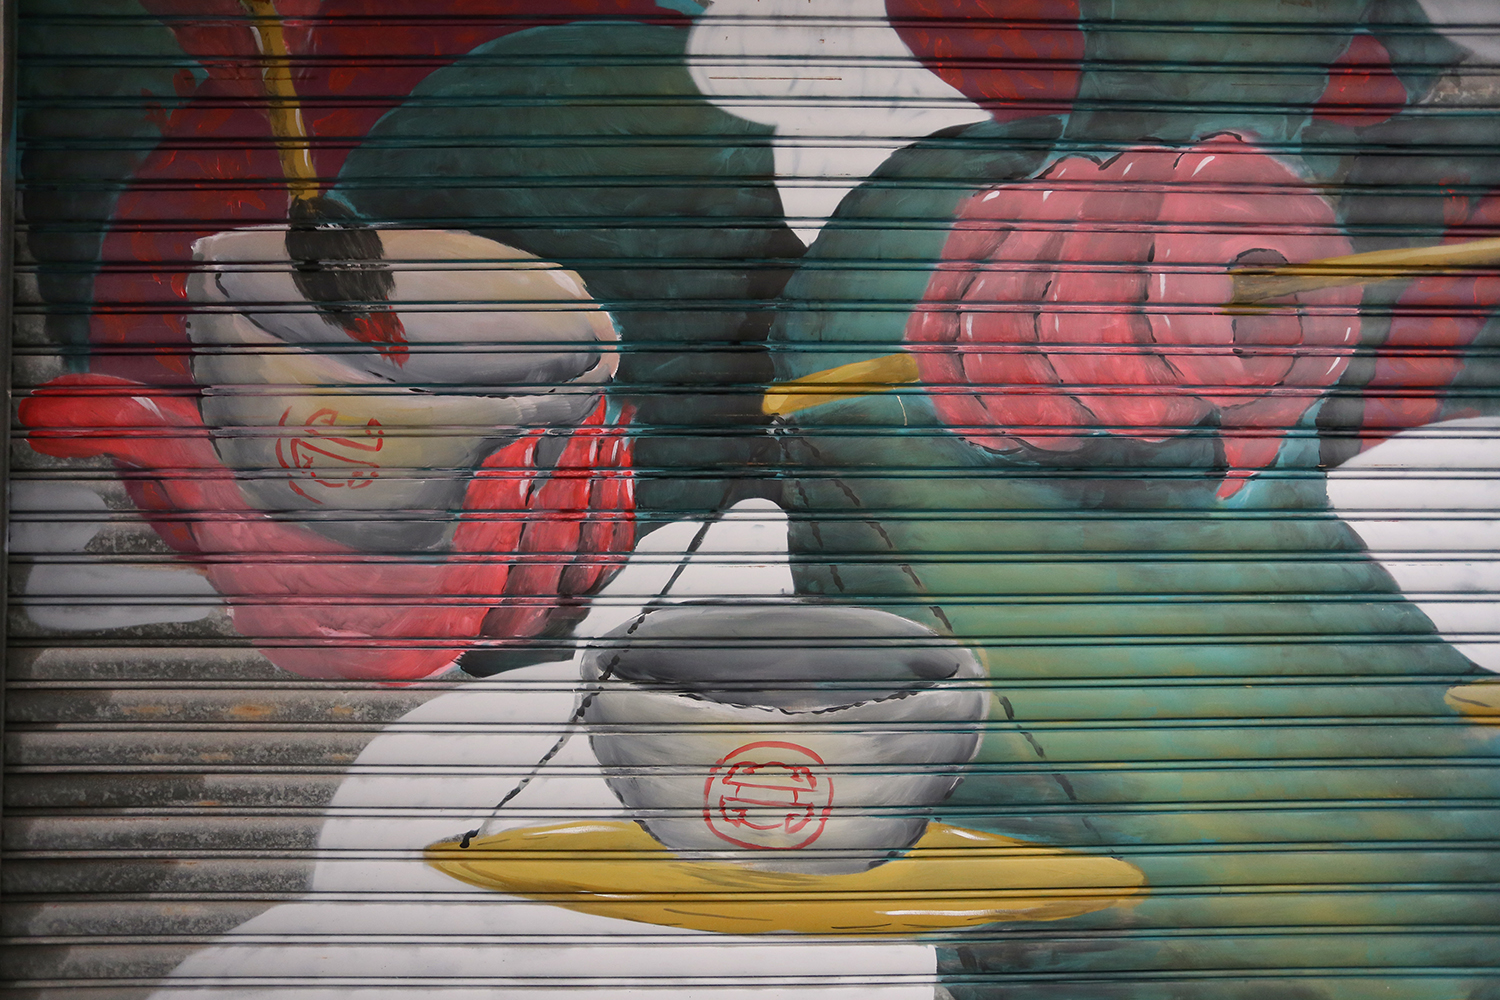 barlo-new-shutter-at-stanley-market-hong-kong-05